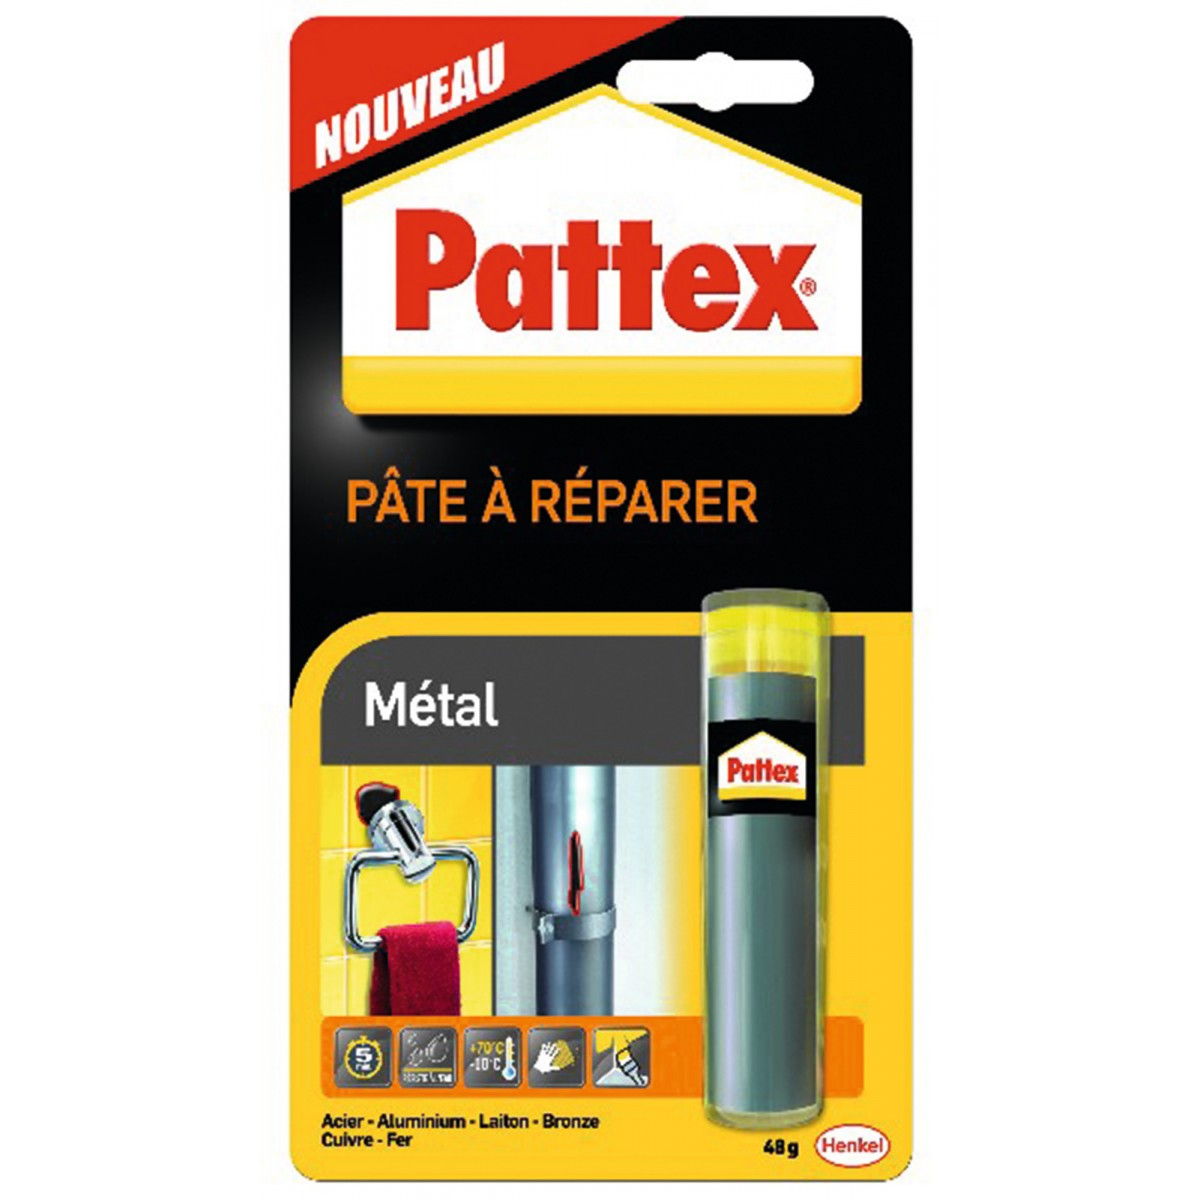 Repair Express métal Pattex - Tube 48 g